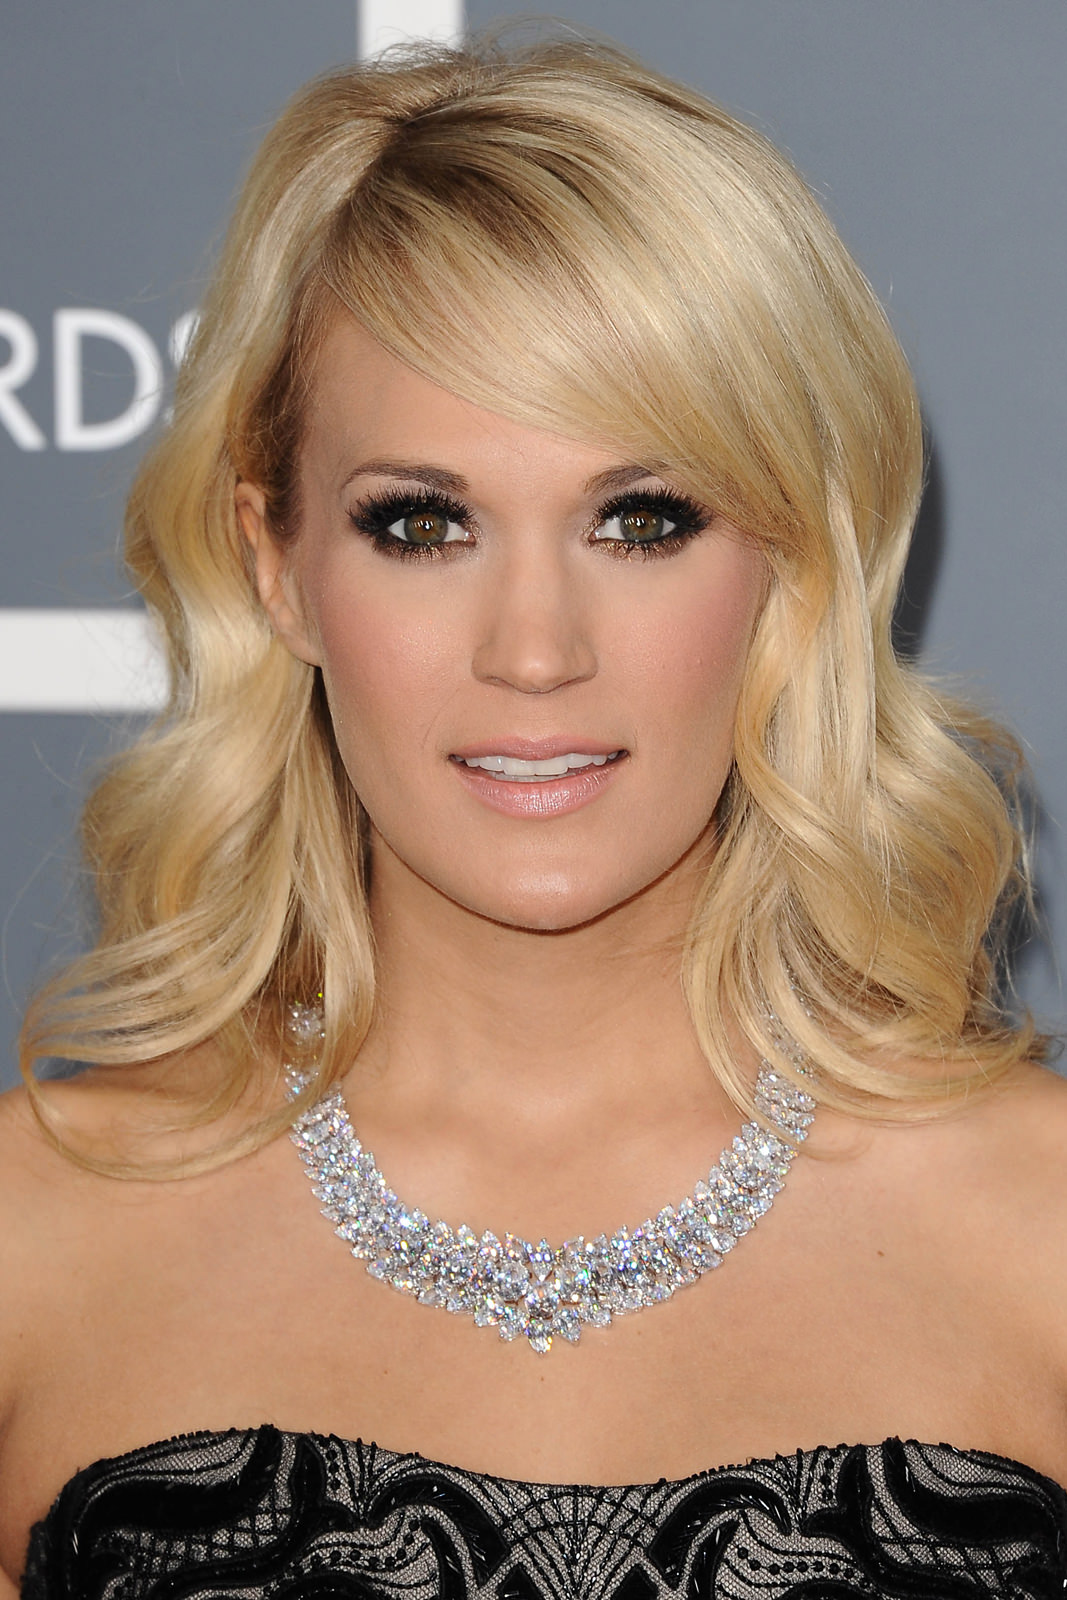 Carrie Underwood Photo Gallery